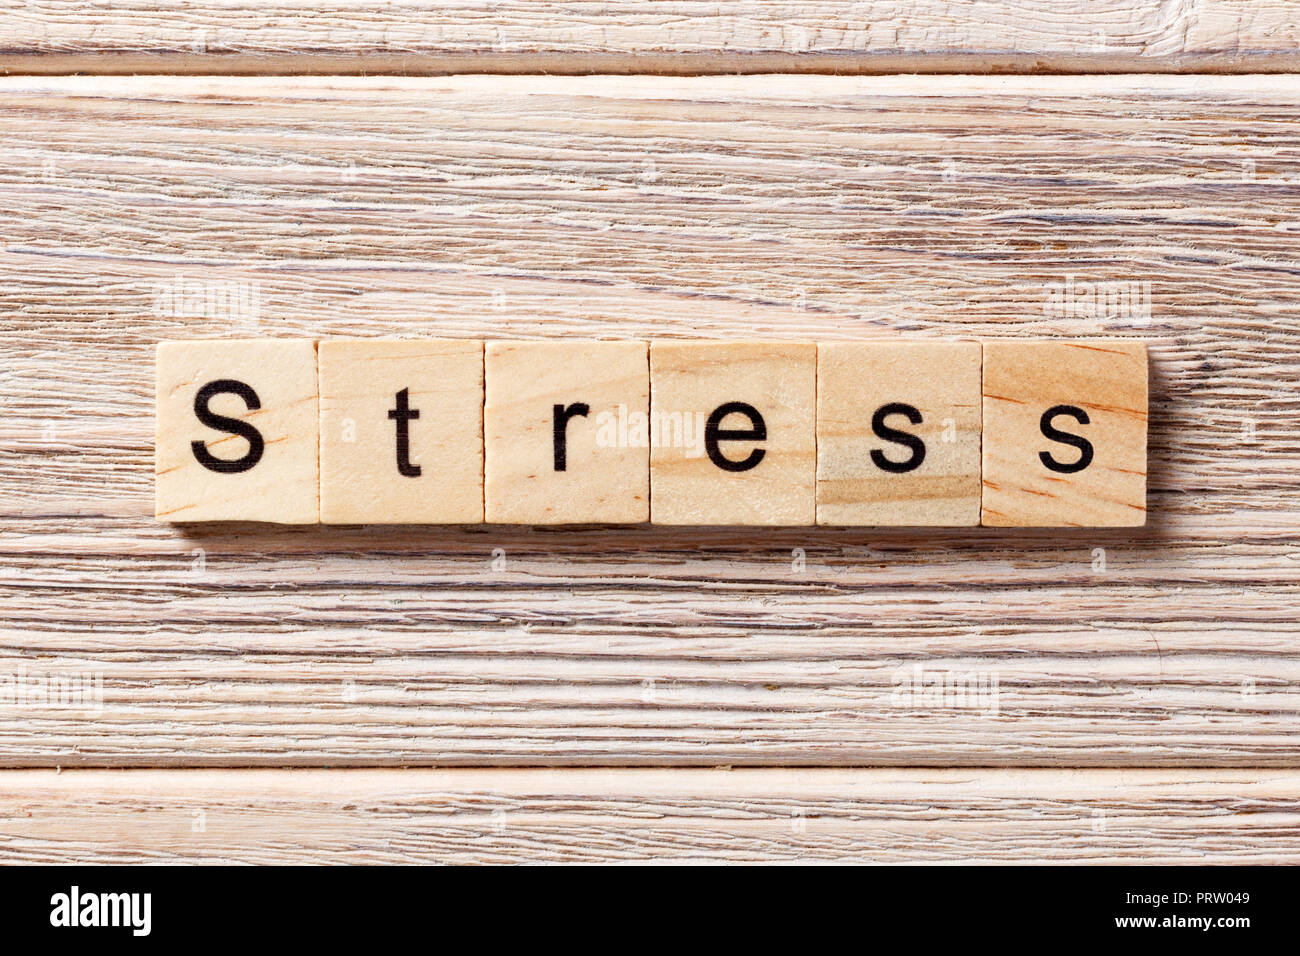 Stress word written on wood block. Stress text on table, concept. - Stock Image